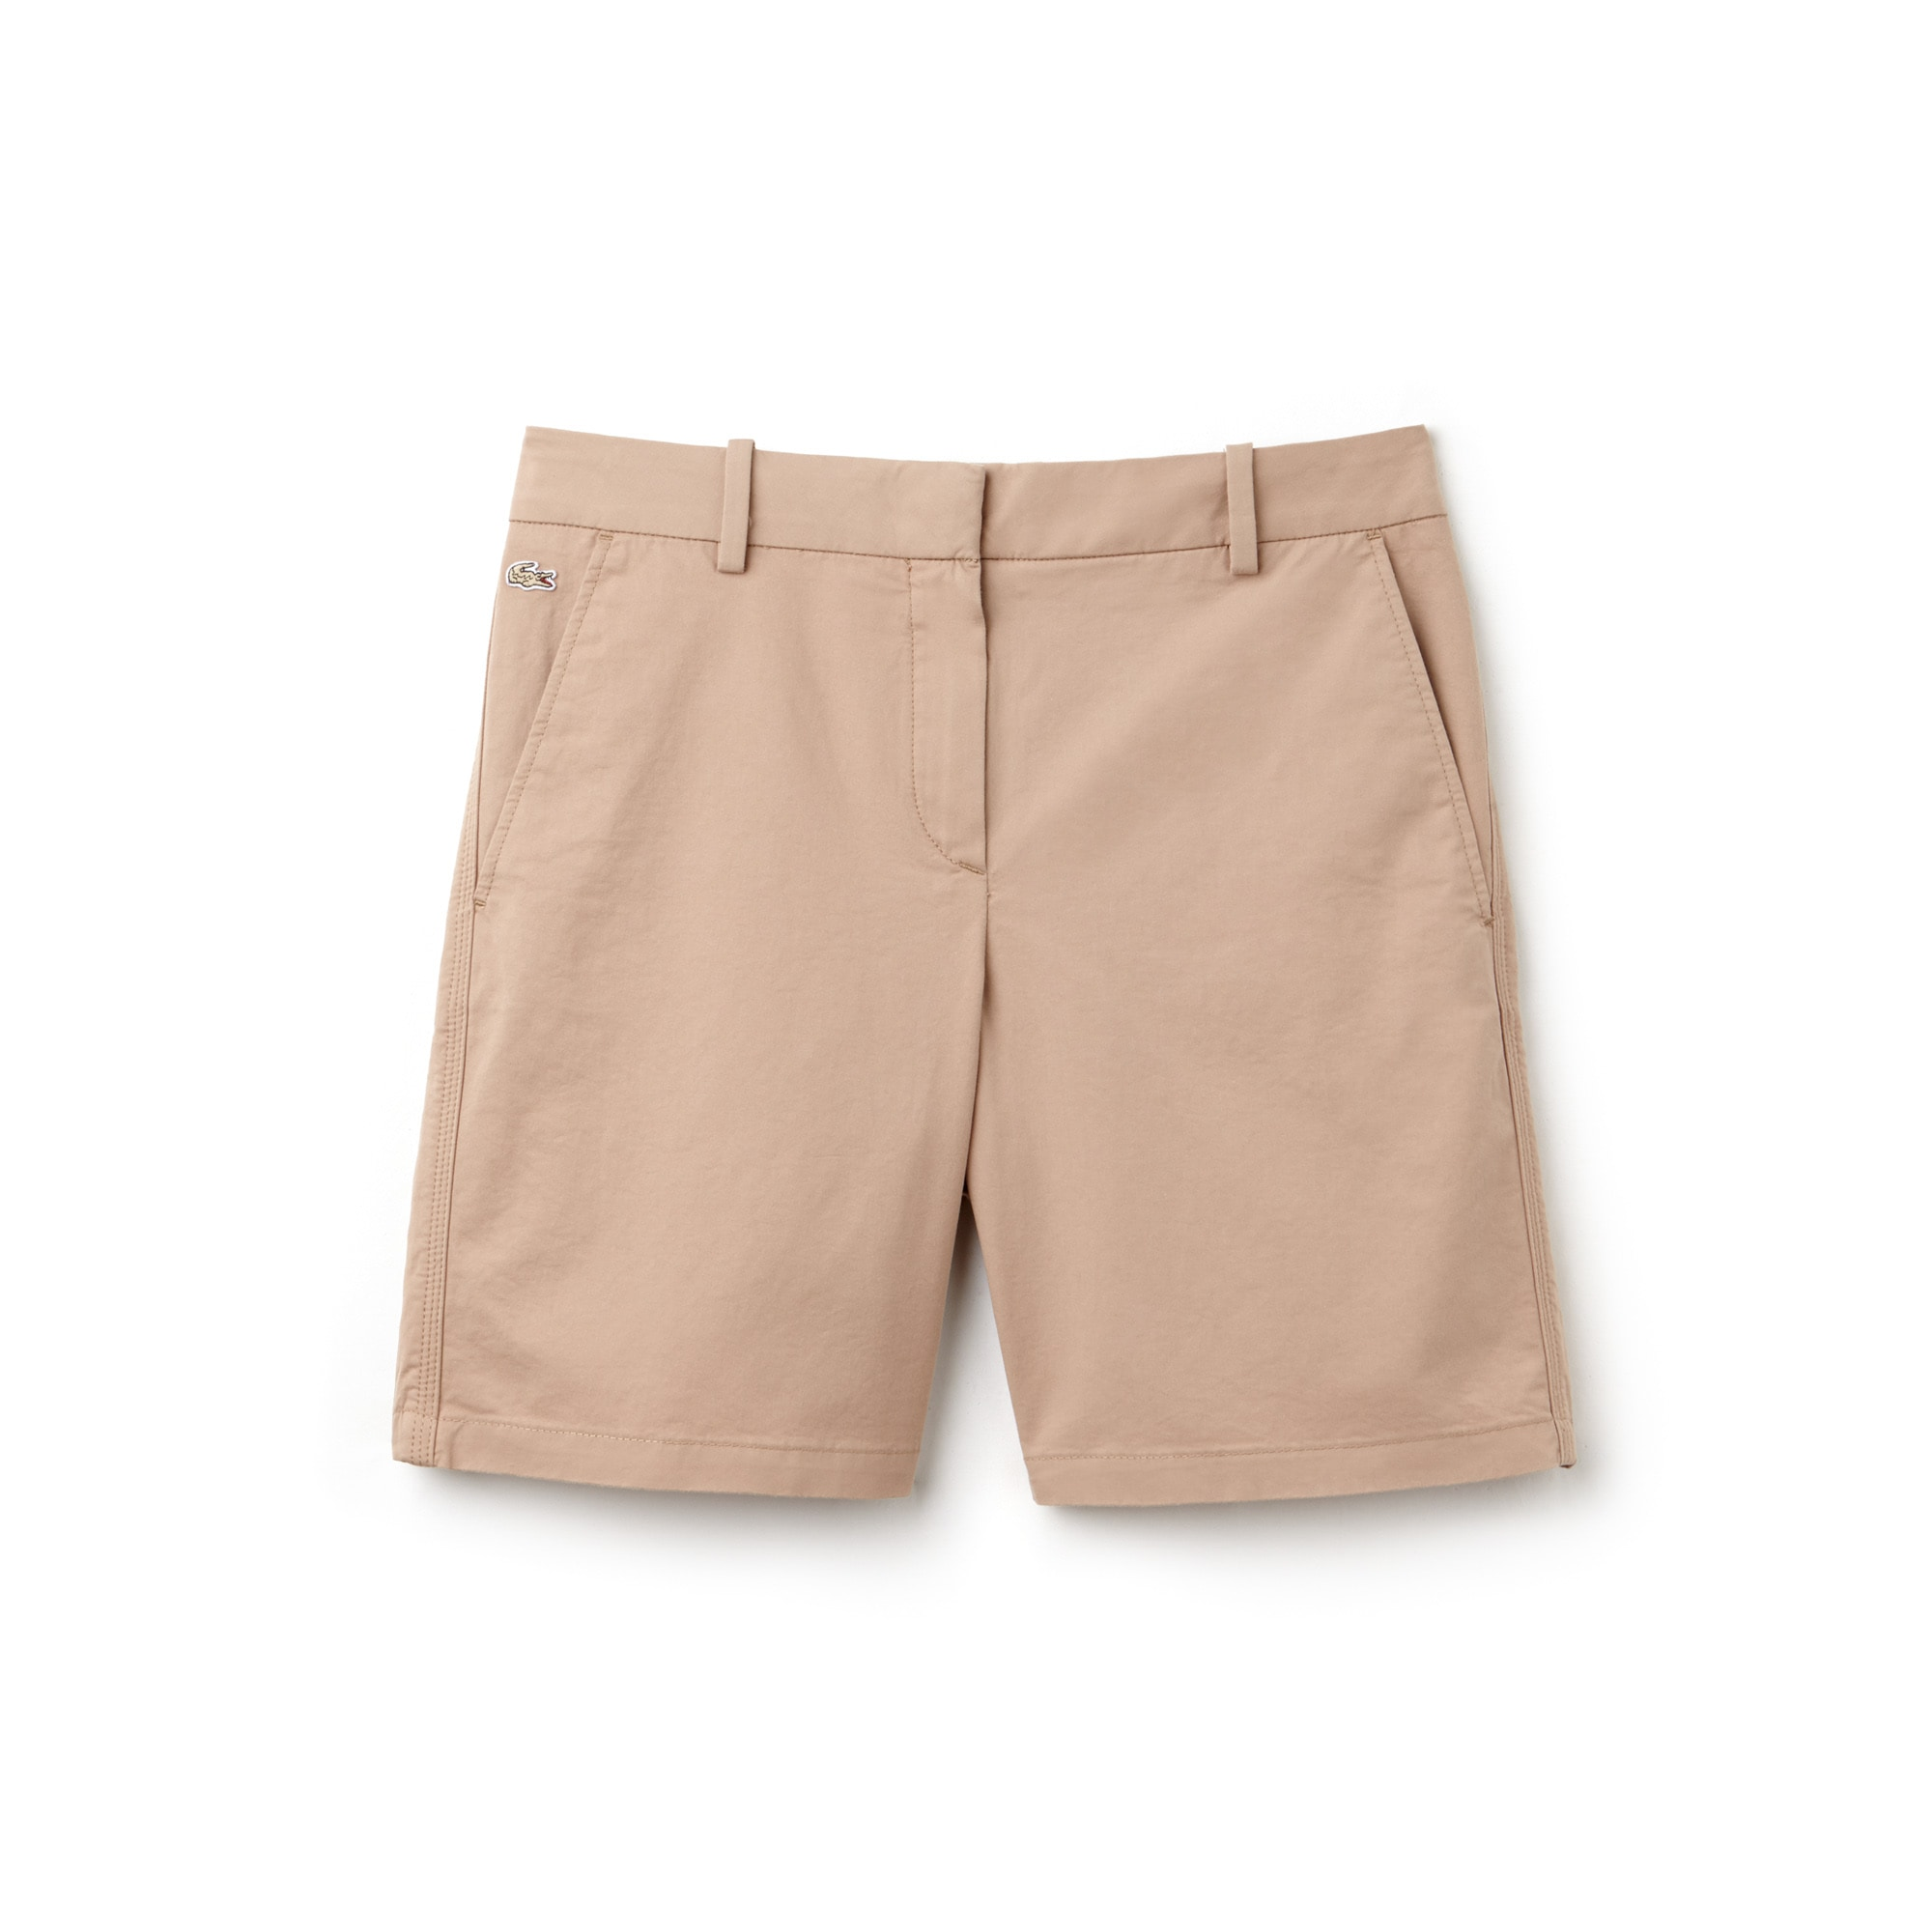 Bermuda coupe chino en gabardine stretch unie